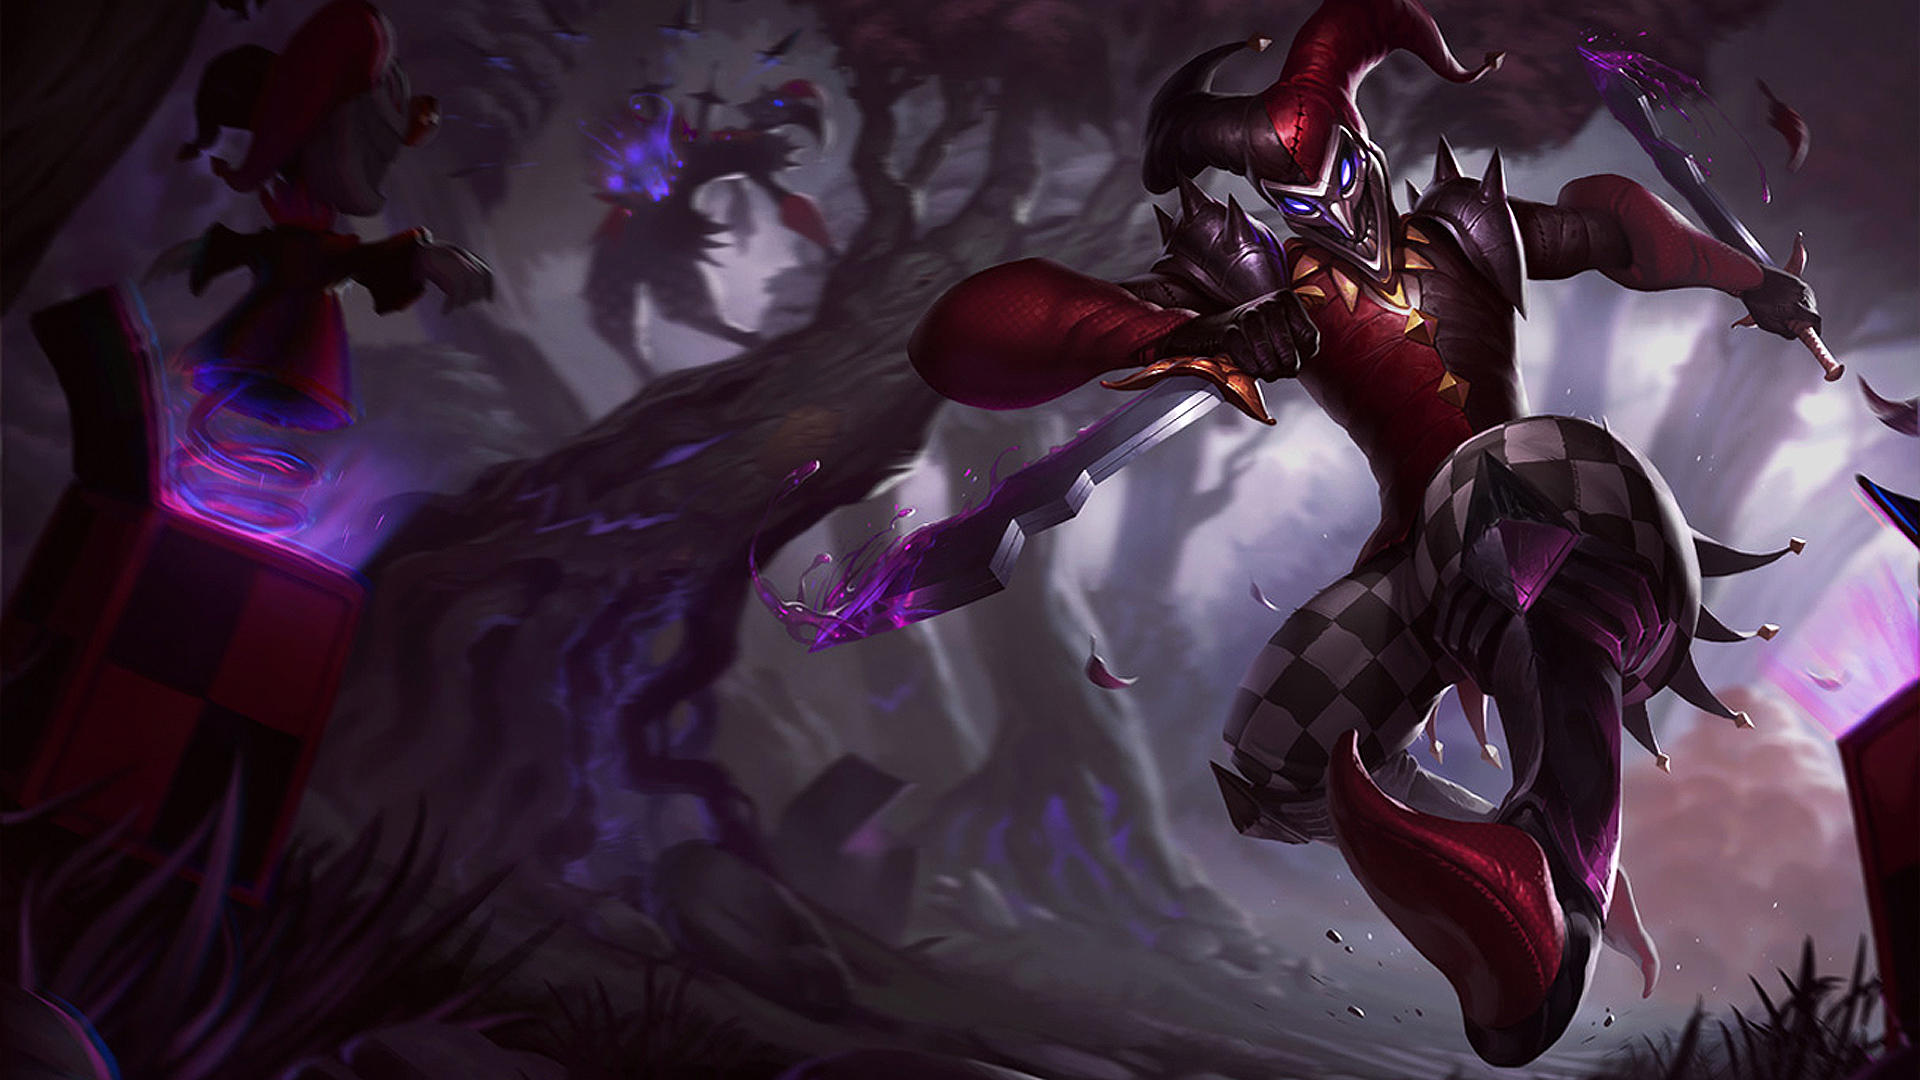 Shaco New Splash Art 1920x1080. Wallpaper Resolution 1920x1080